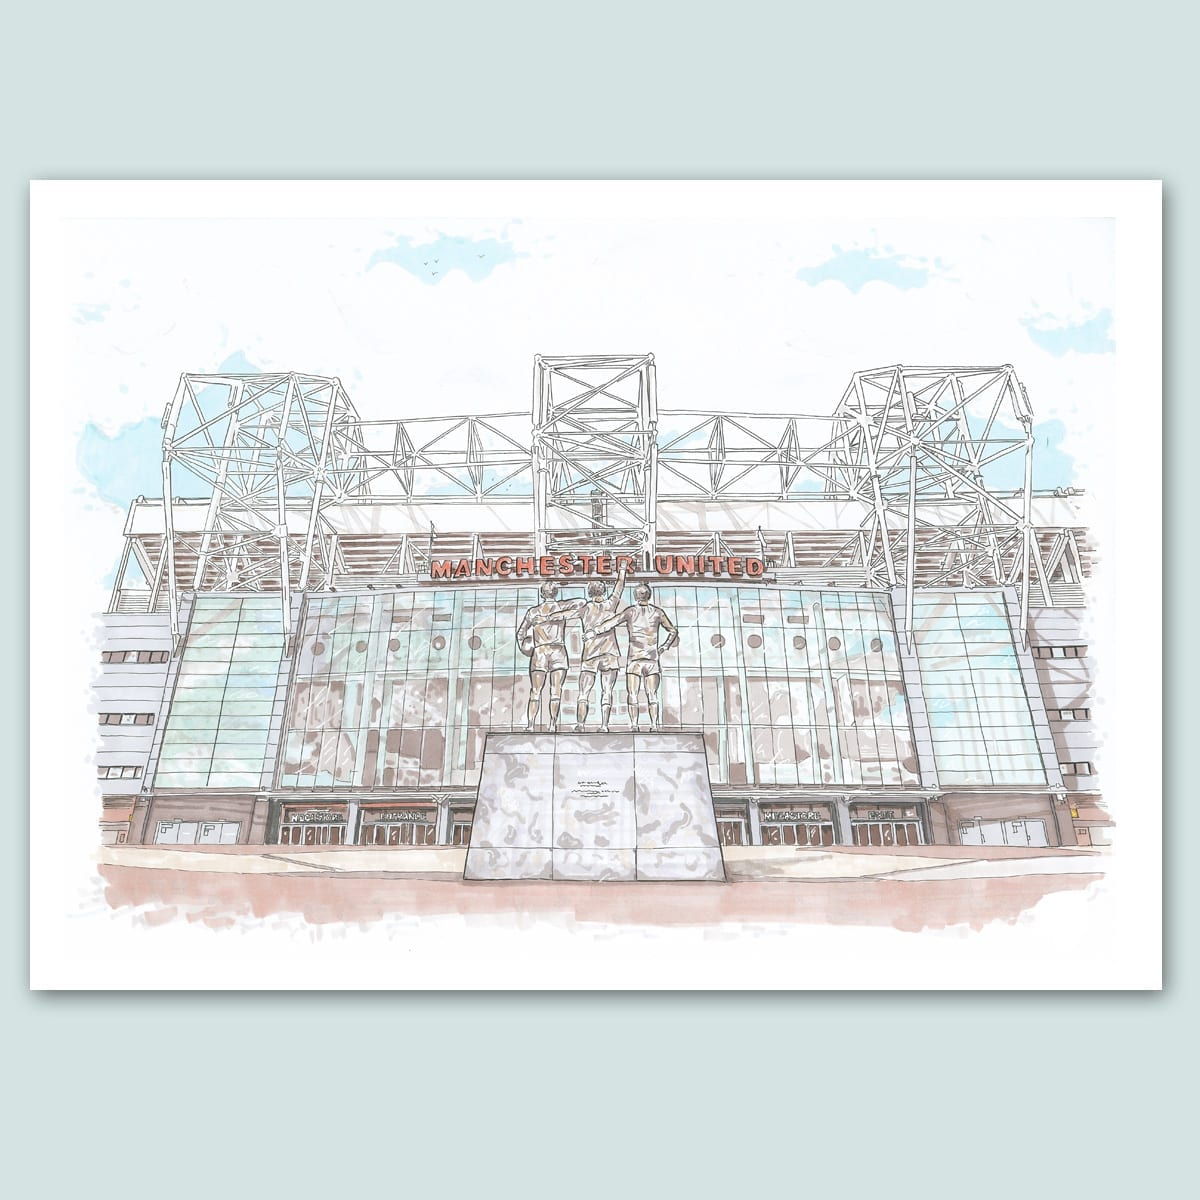 Manchester United, Old Trafford Stadium Limited Edition Print